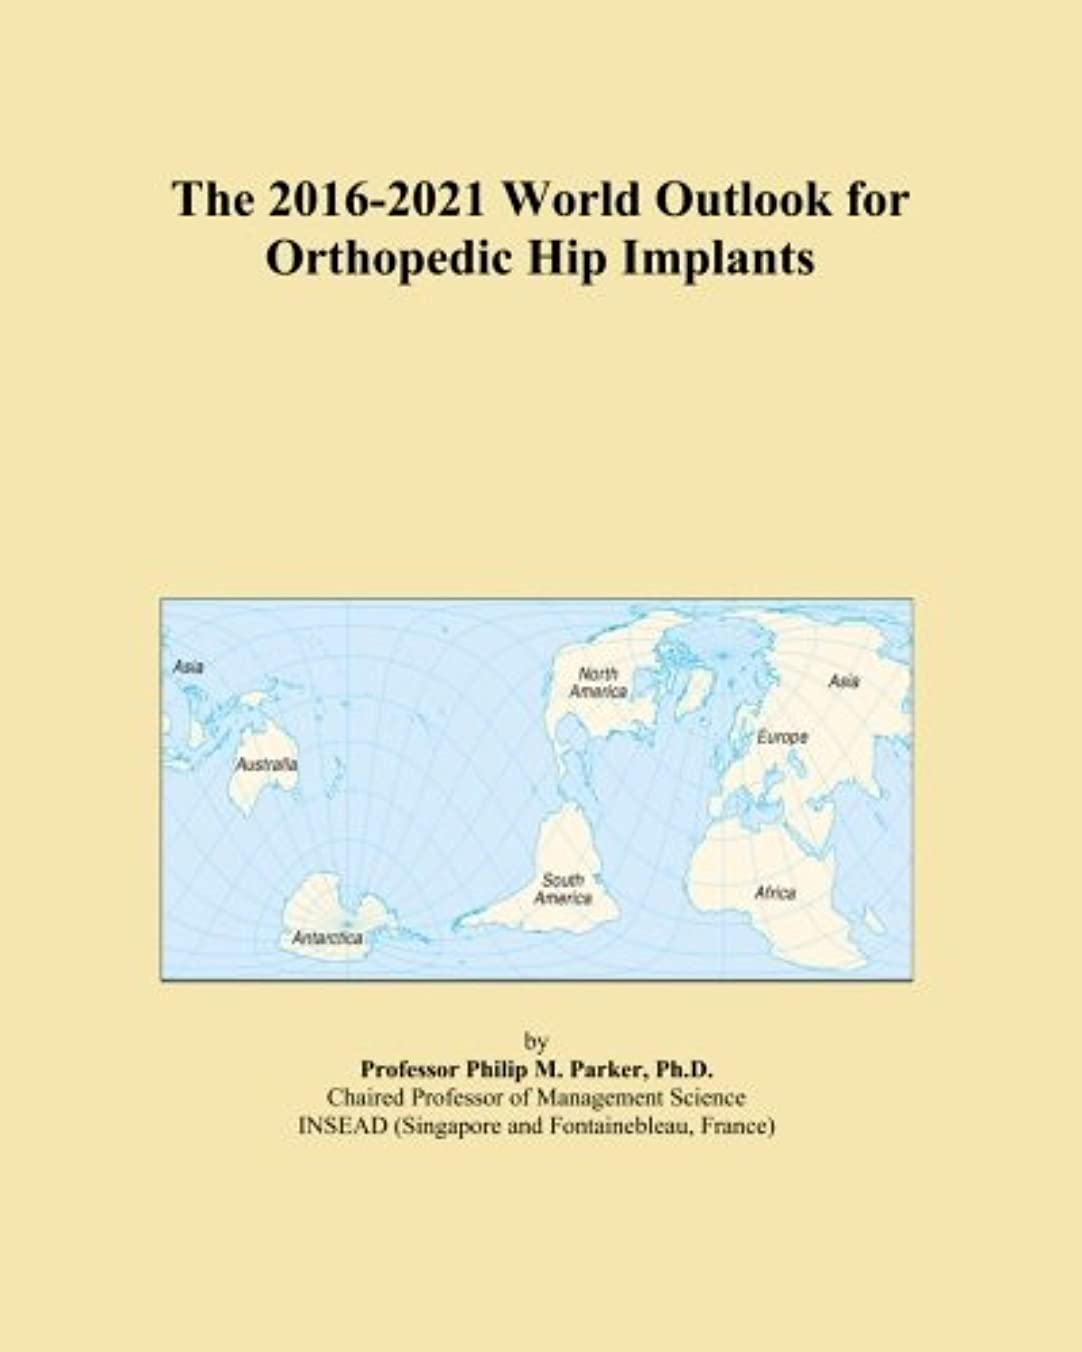 The 2016-2021 World Outlook for Orthopedic Hip Implants